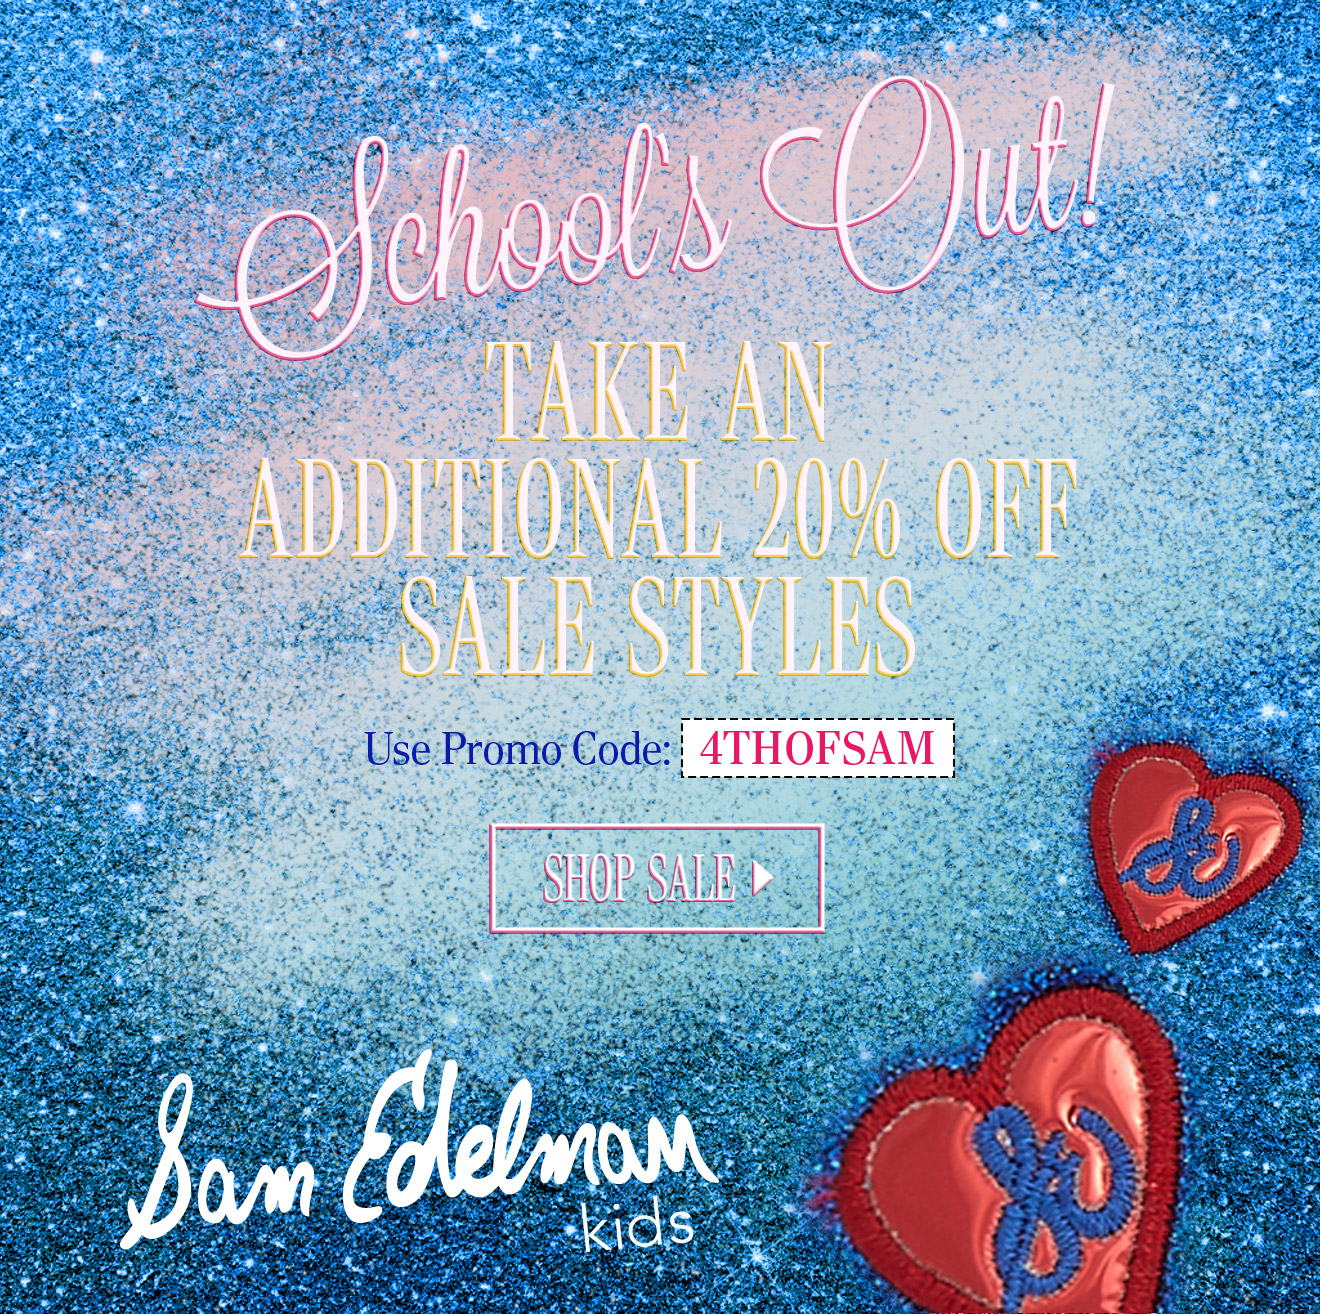 School's Out! TAKE AN ADDITIONAL 20% OFF SALE STYLES. Use Promo Code: 4THOFSAM. SHOP SALE. Sam Edelman Kids.